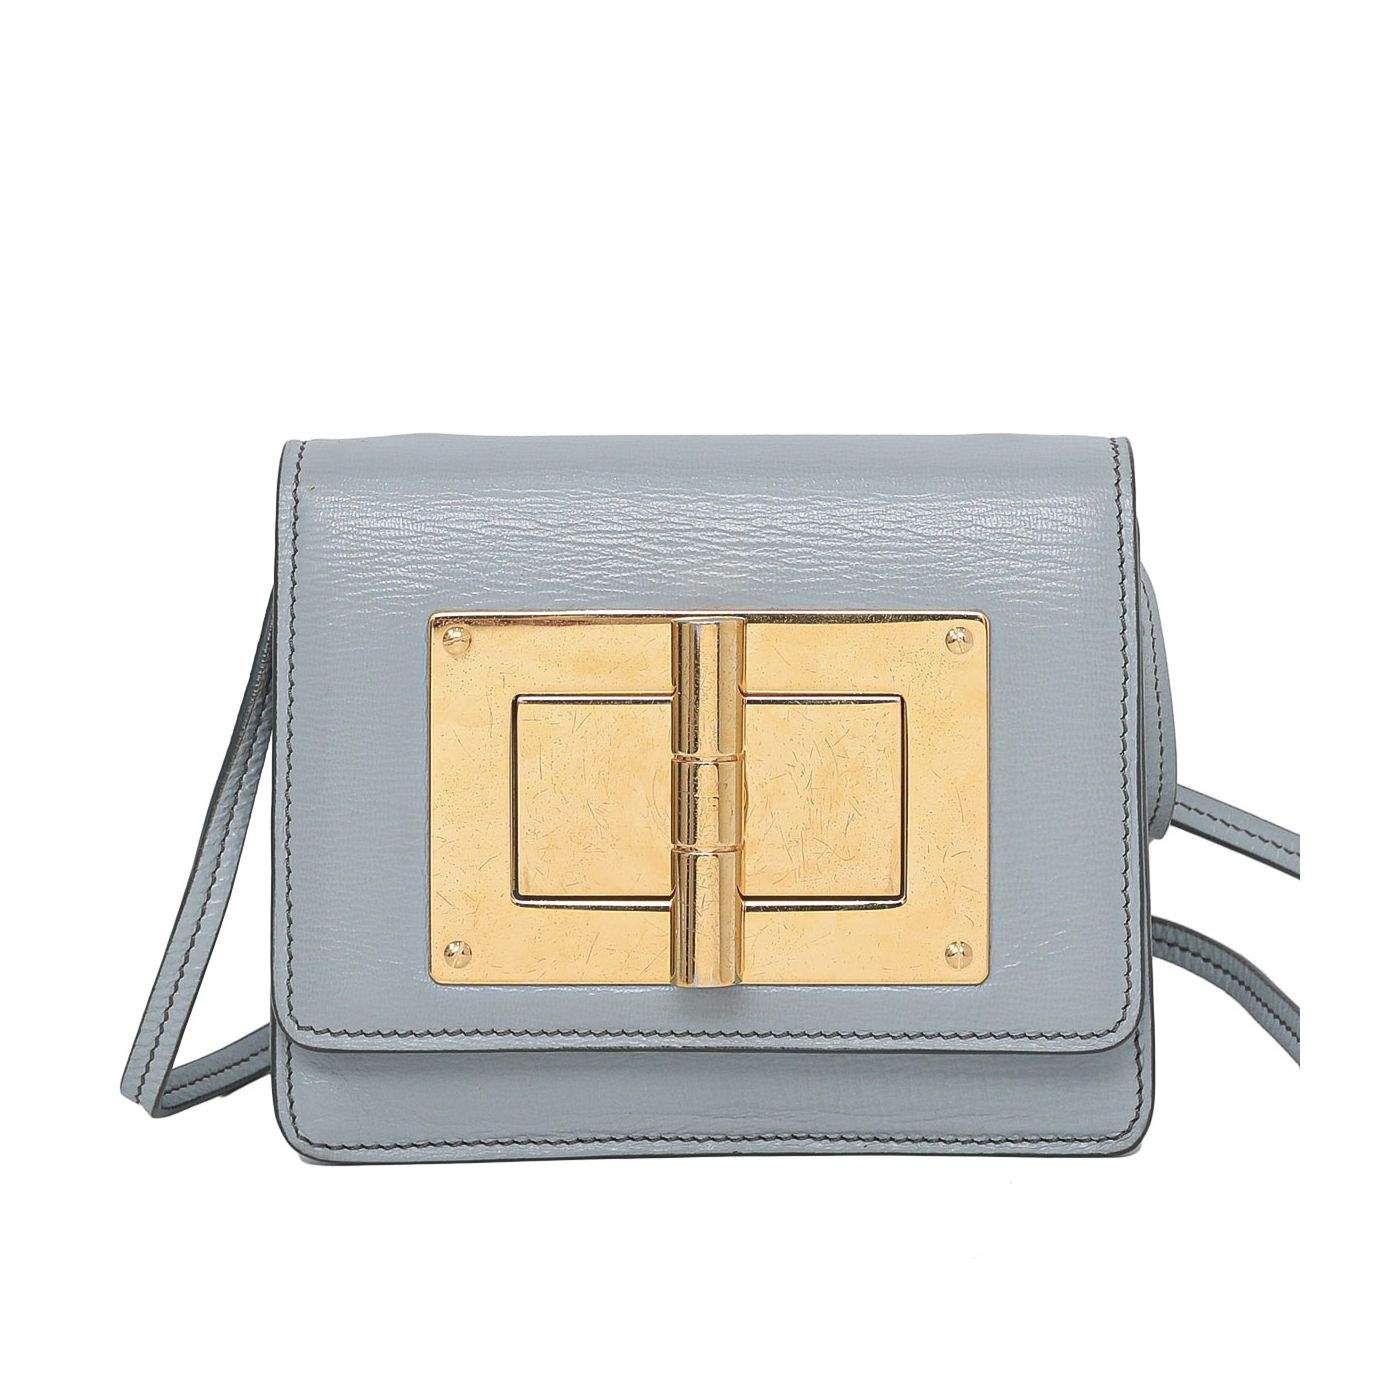 Tom Ford Gray Natalia Shoulder Bag